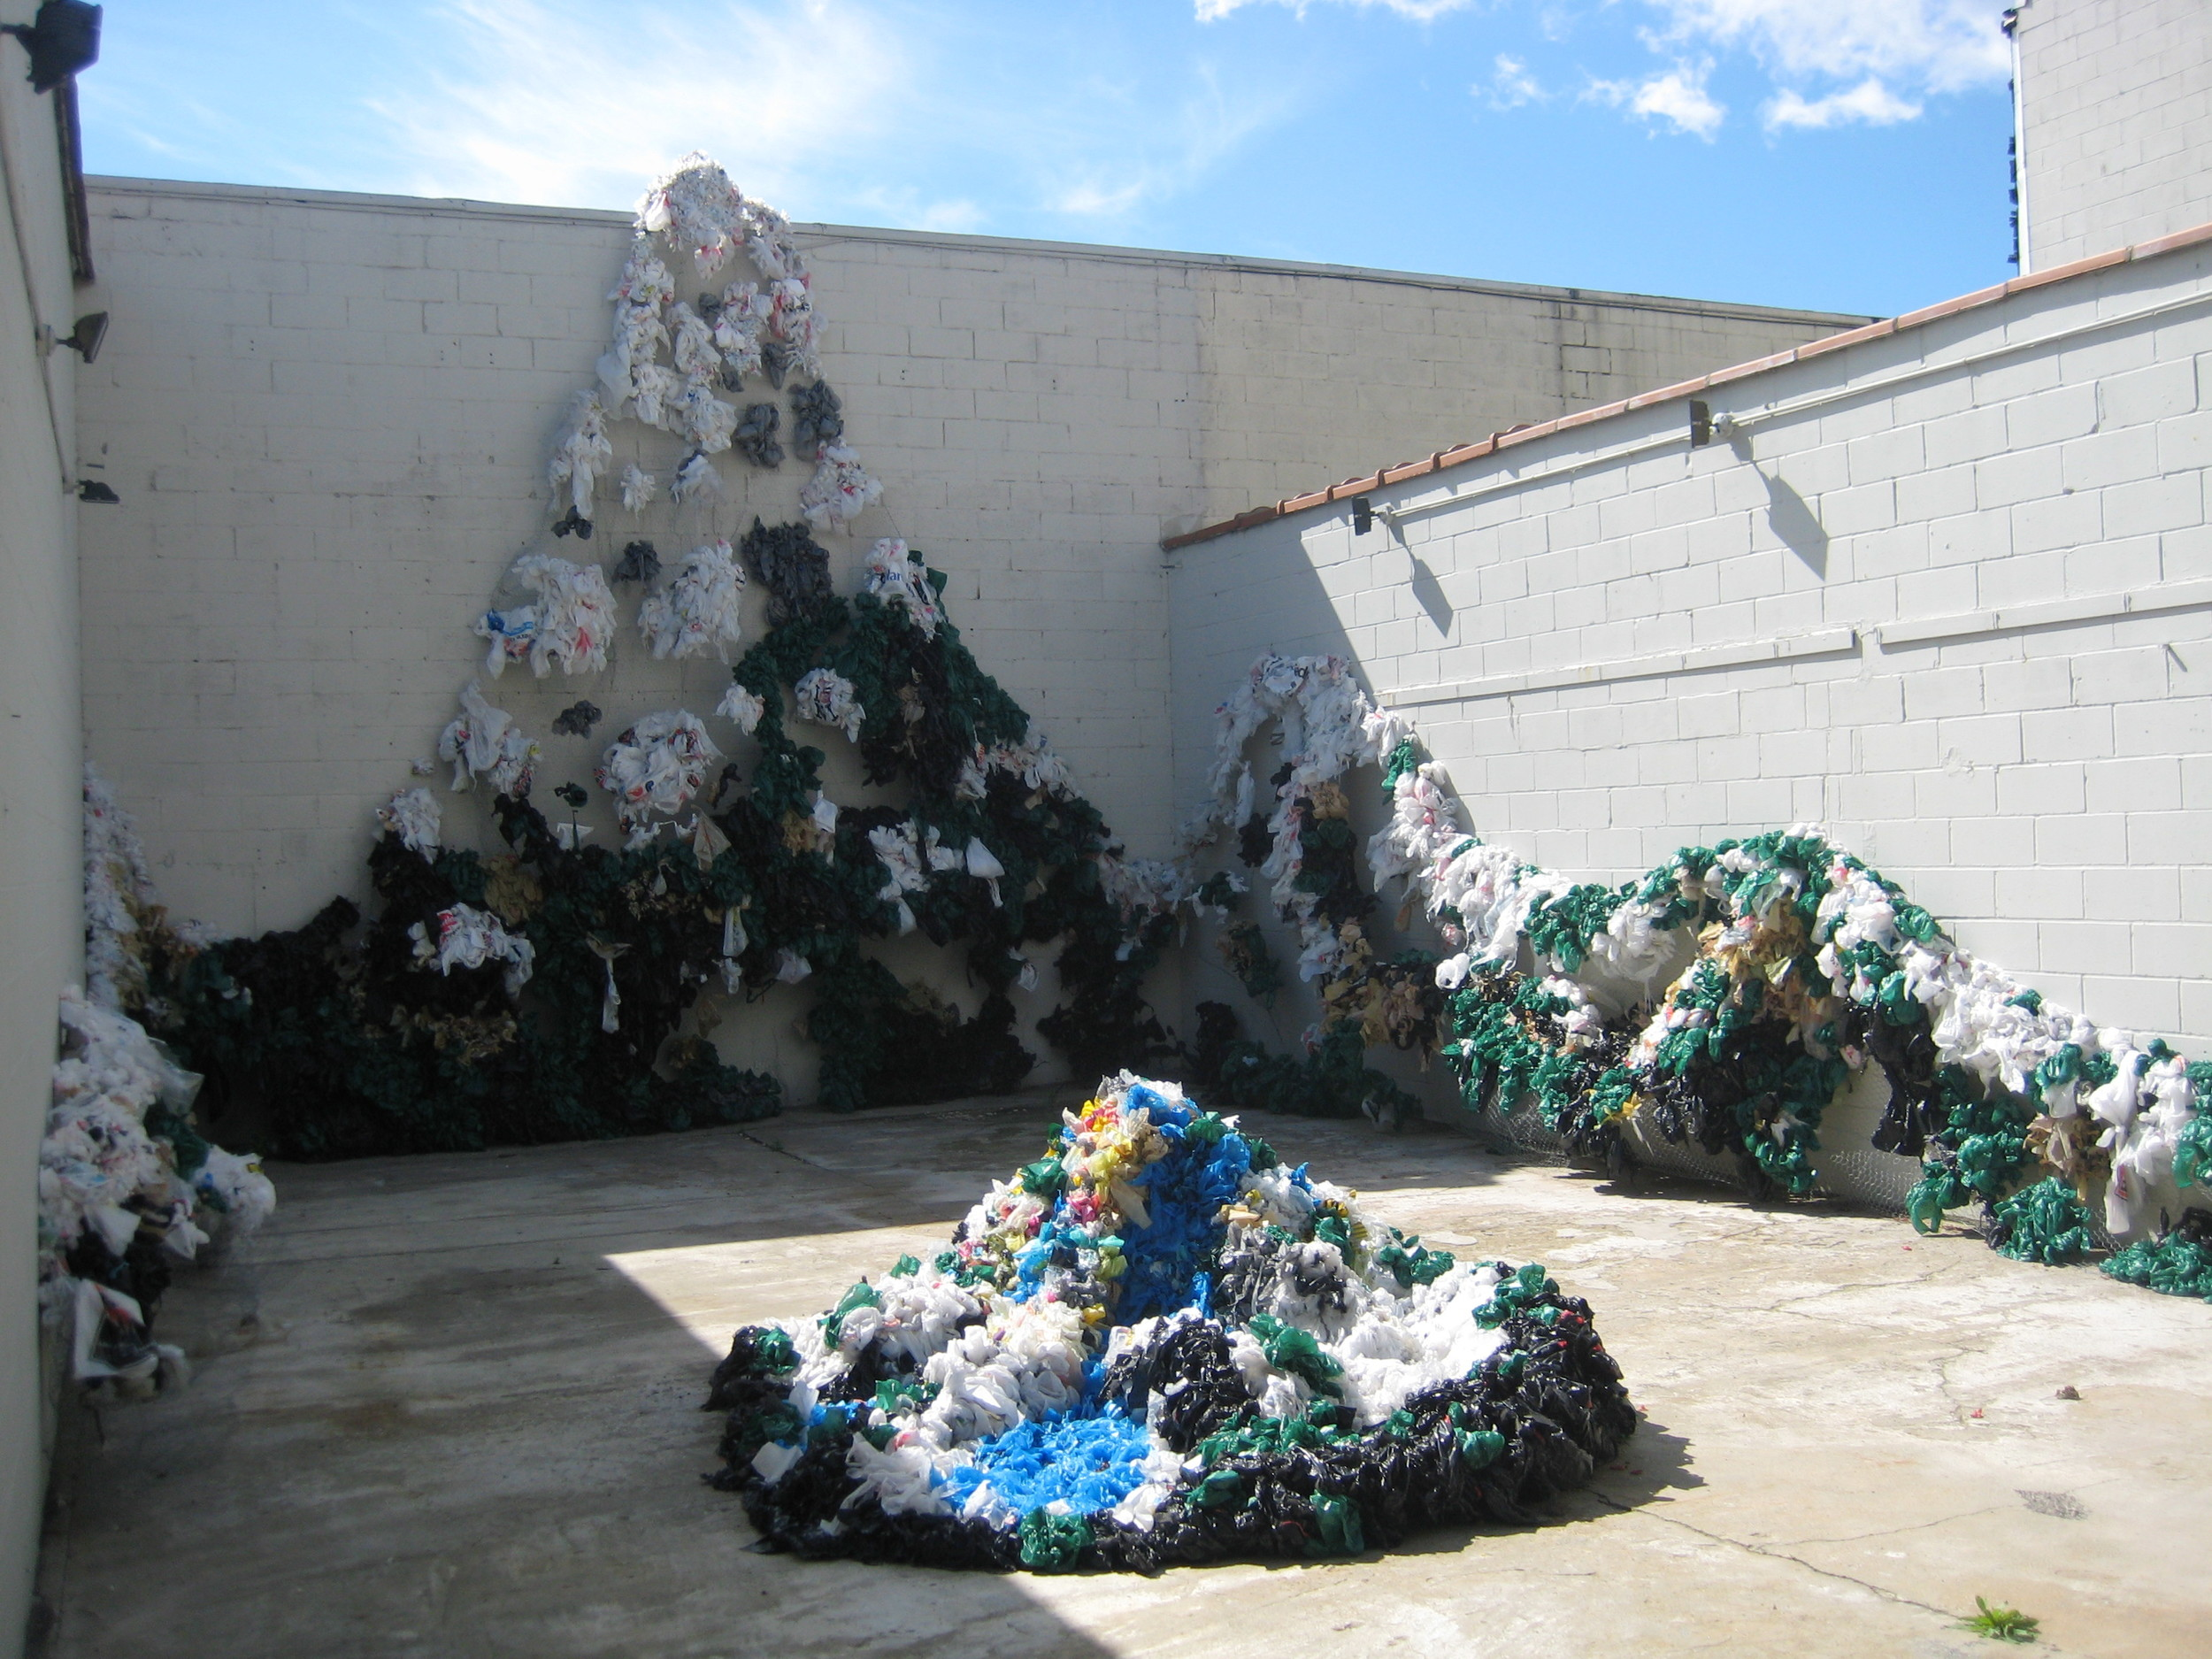 Image: Kim Holleman, Future Mountain, recycled plastic shopping bags /©Kim Holleman